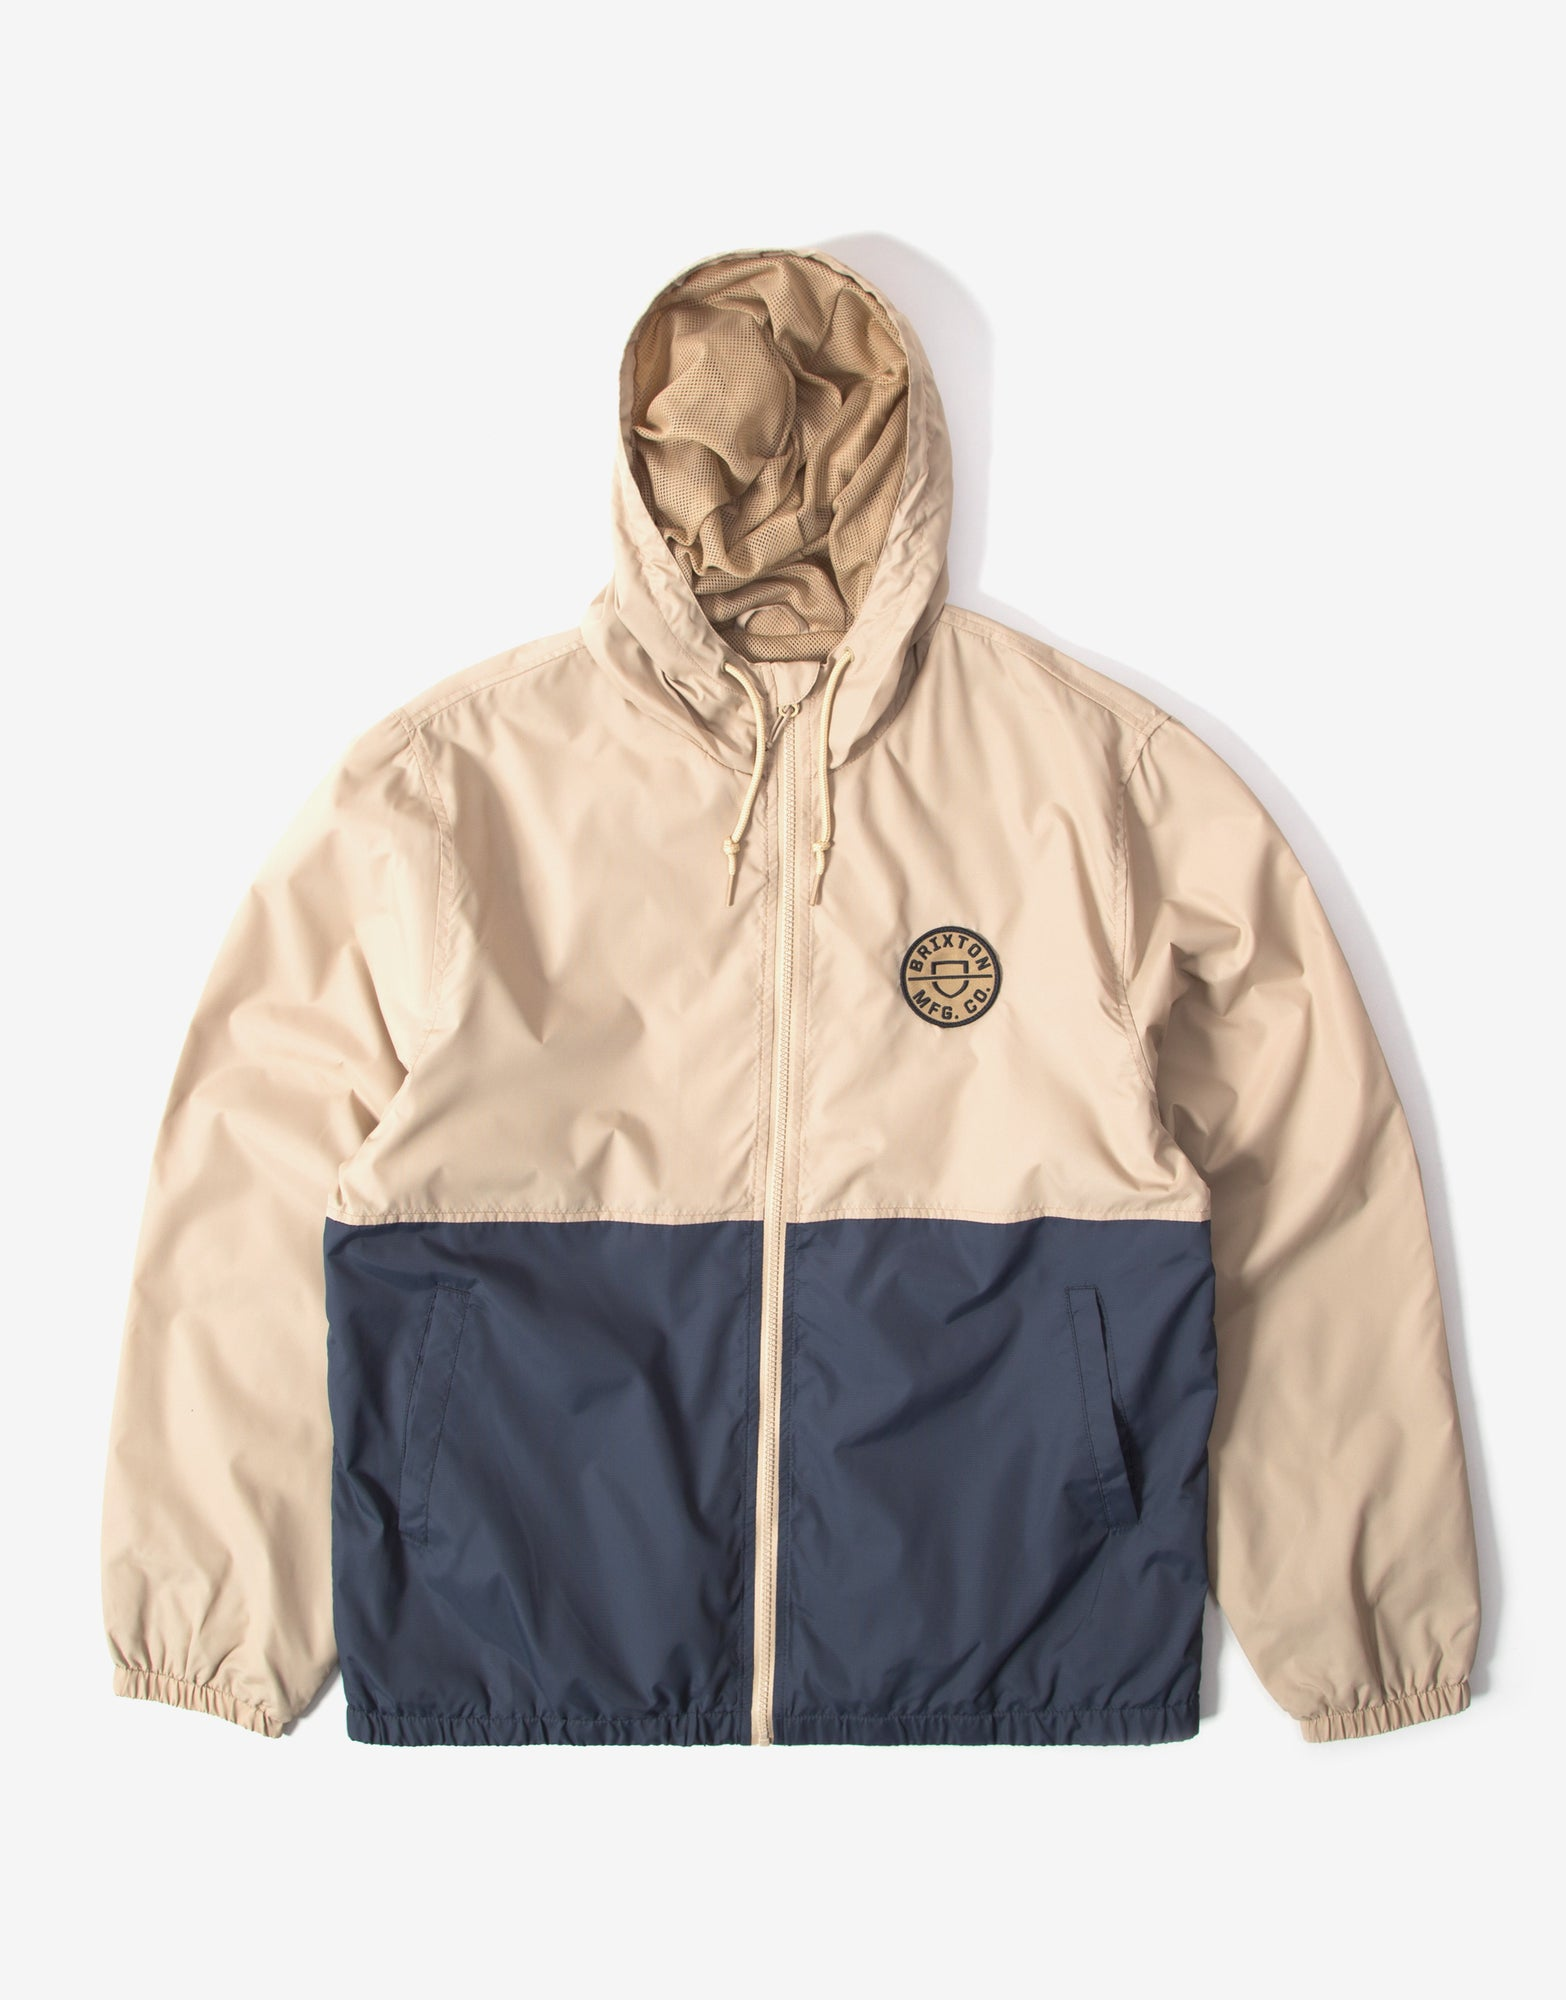 Brixton Claxton Alton Light Weight Zip Hood Jacket - Vanilla/Steel Blue